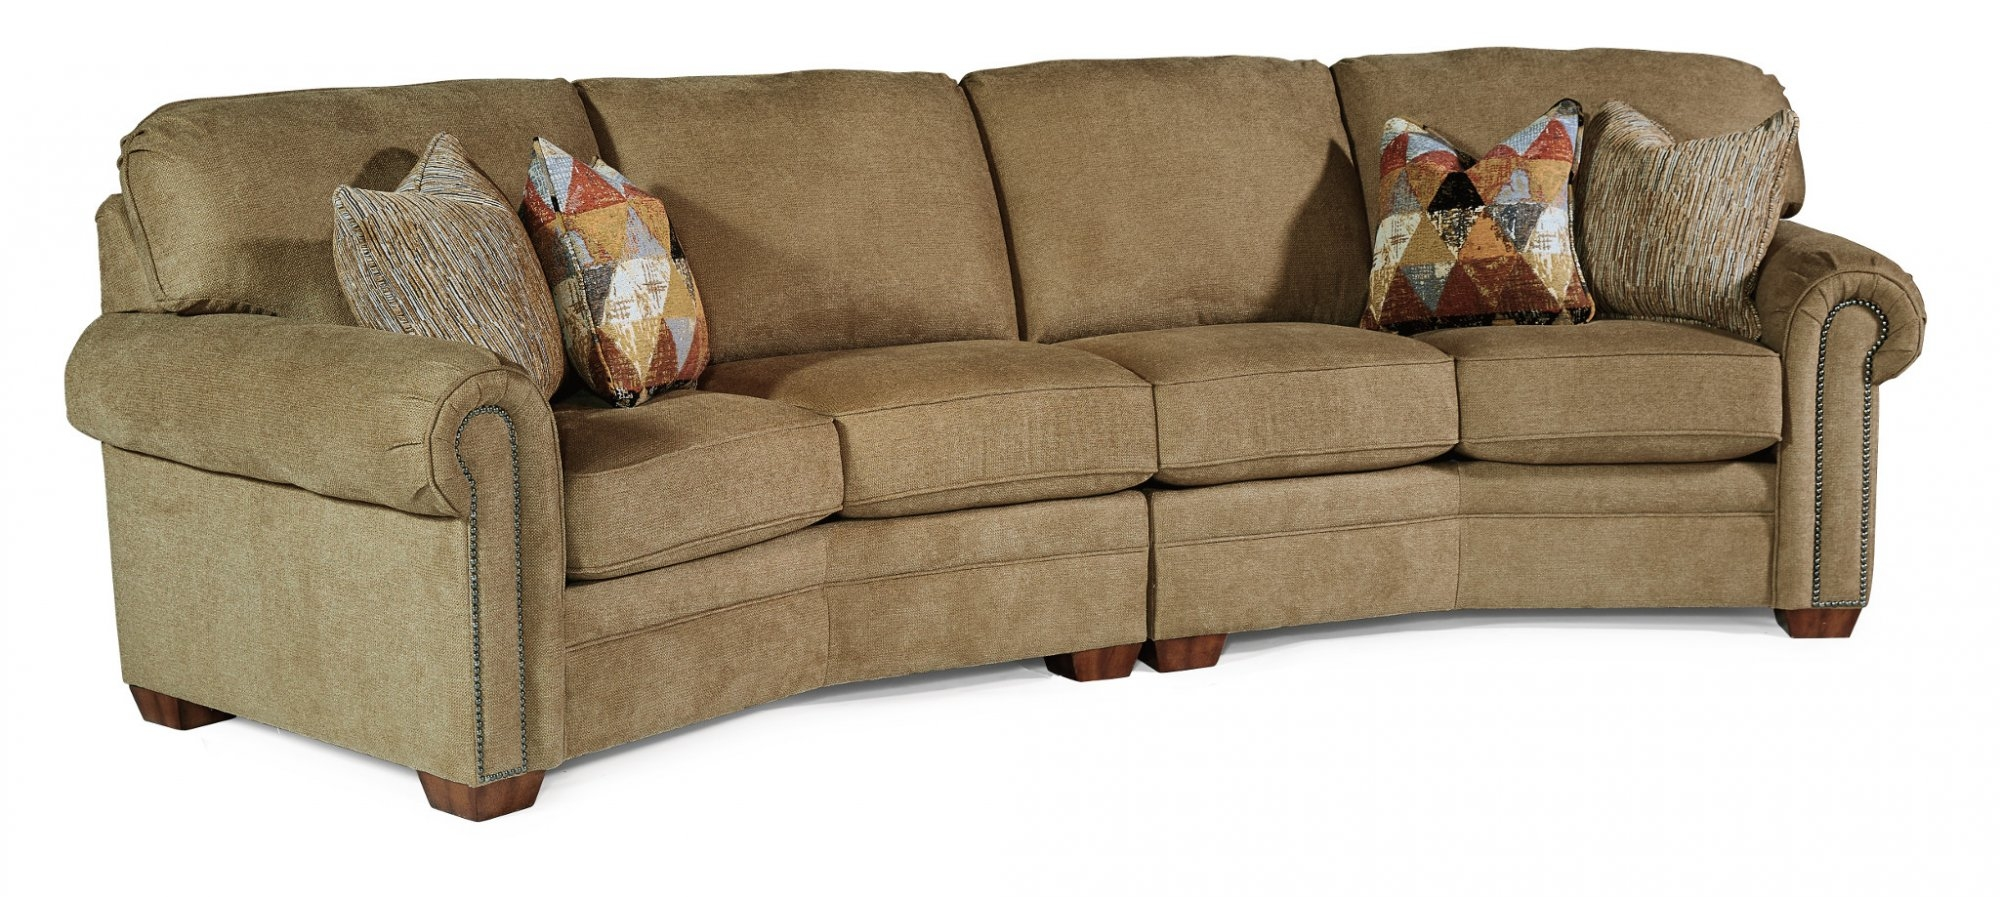 Featured Image of Conversation Sofa Sectional